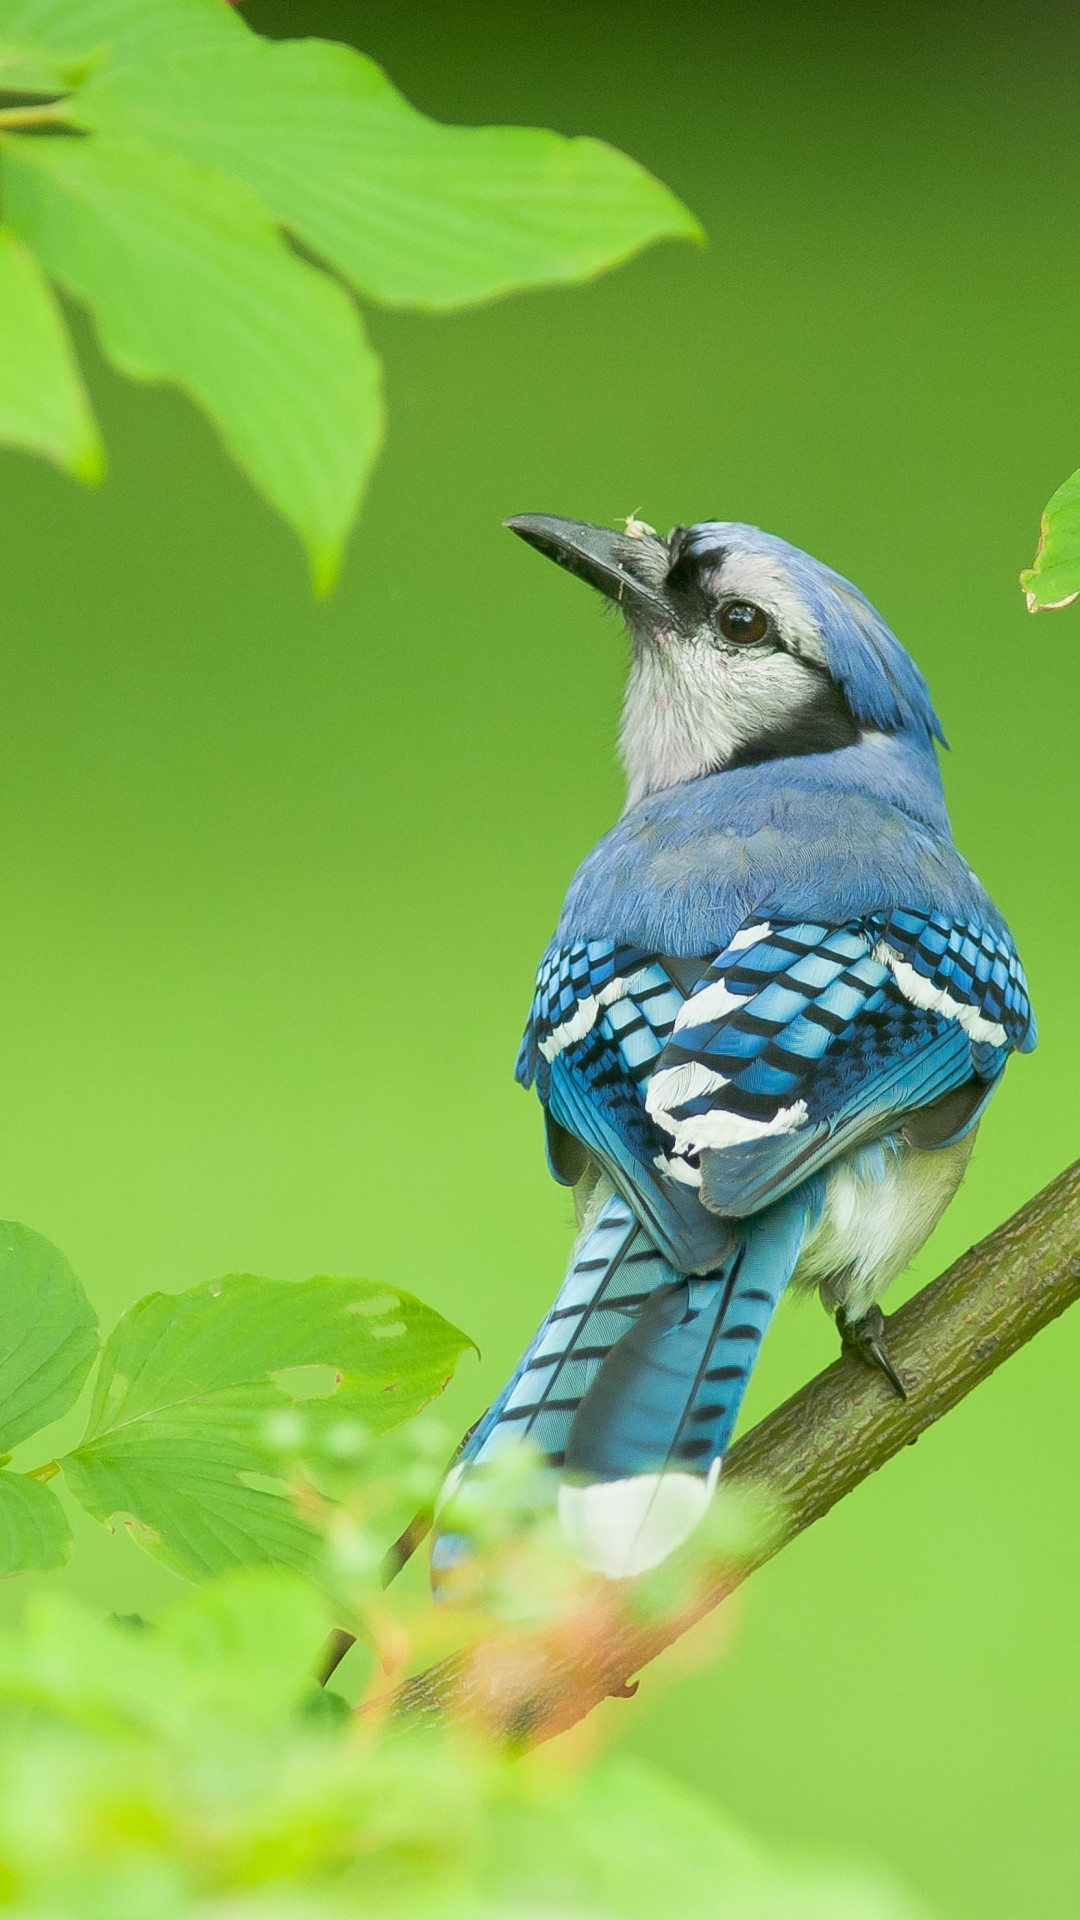 Wallpaper Blue Jay Bird 4k Animals 15000